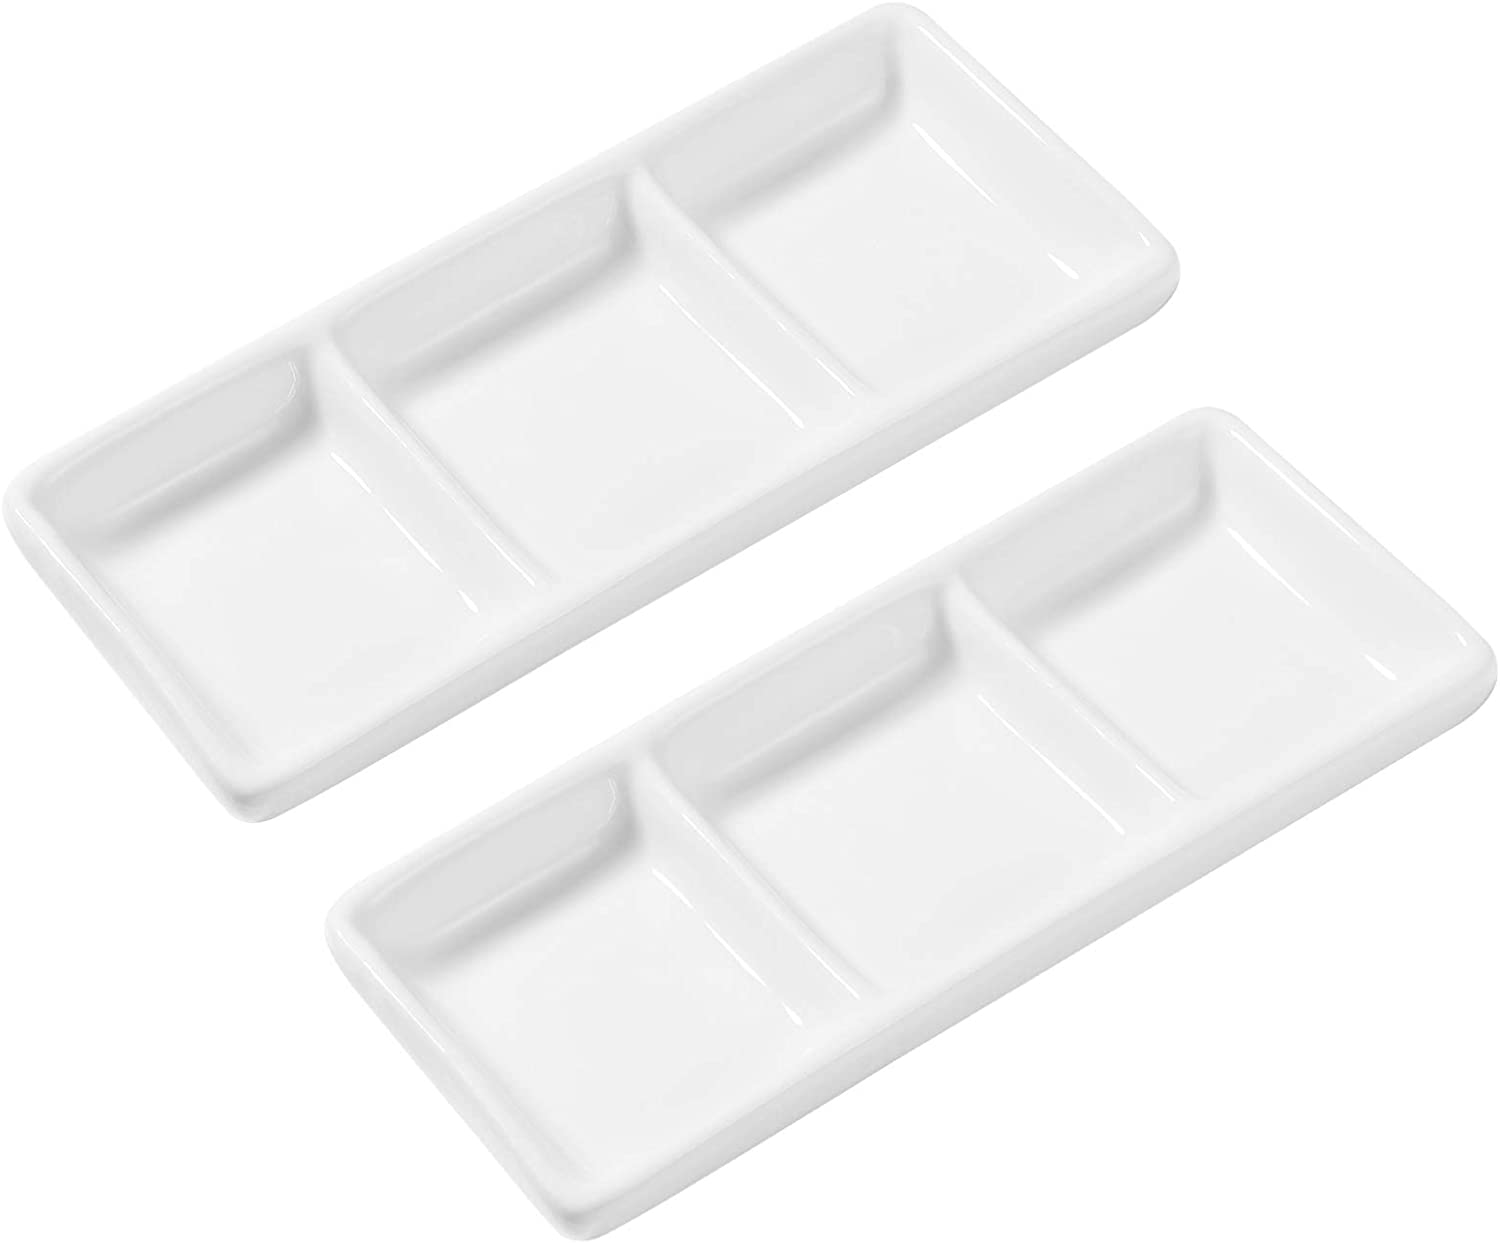 BESTONZON 2pcs White Ceramic Serving Platter 3 Compartment Appetizer Serving Tray Rectangular Divided Sauce Dishes for Restaurant Kitchen Spices Vinegar Nuts (5.9 x 2.6 inch/White)